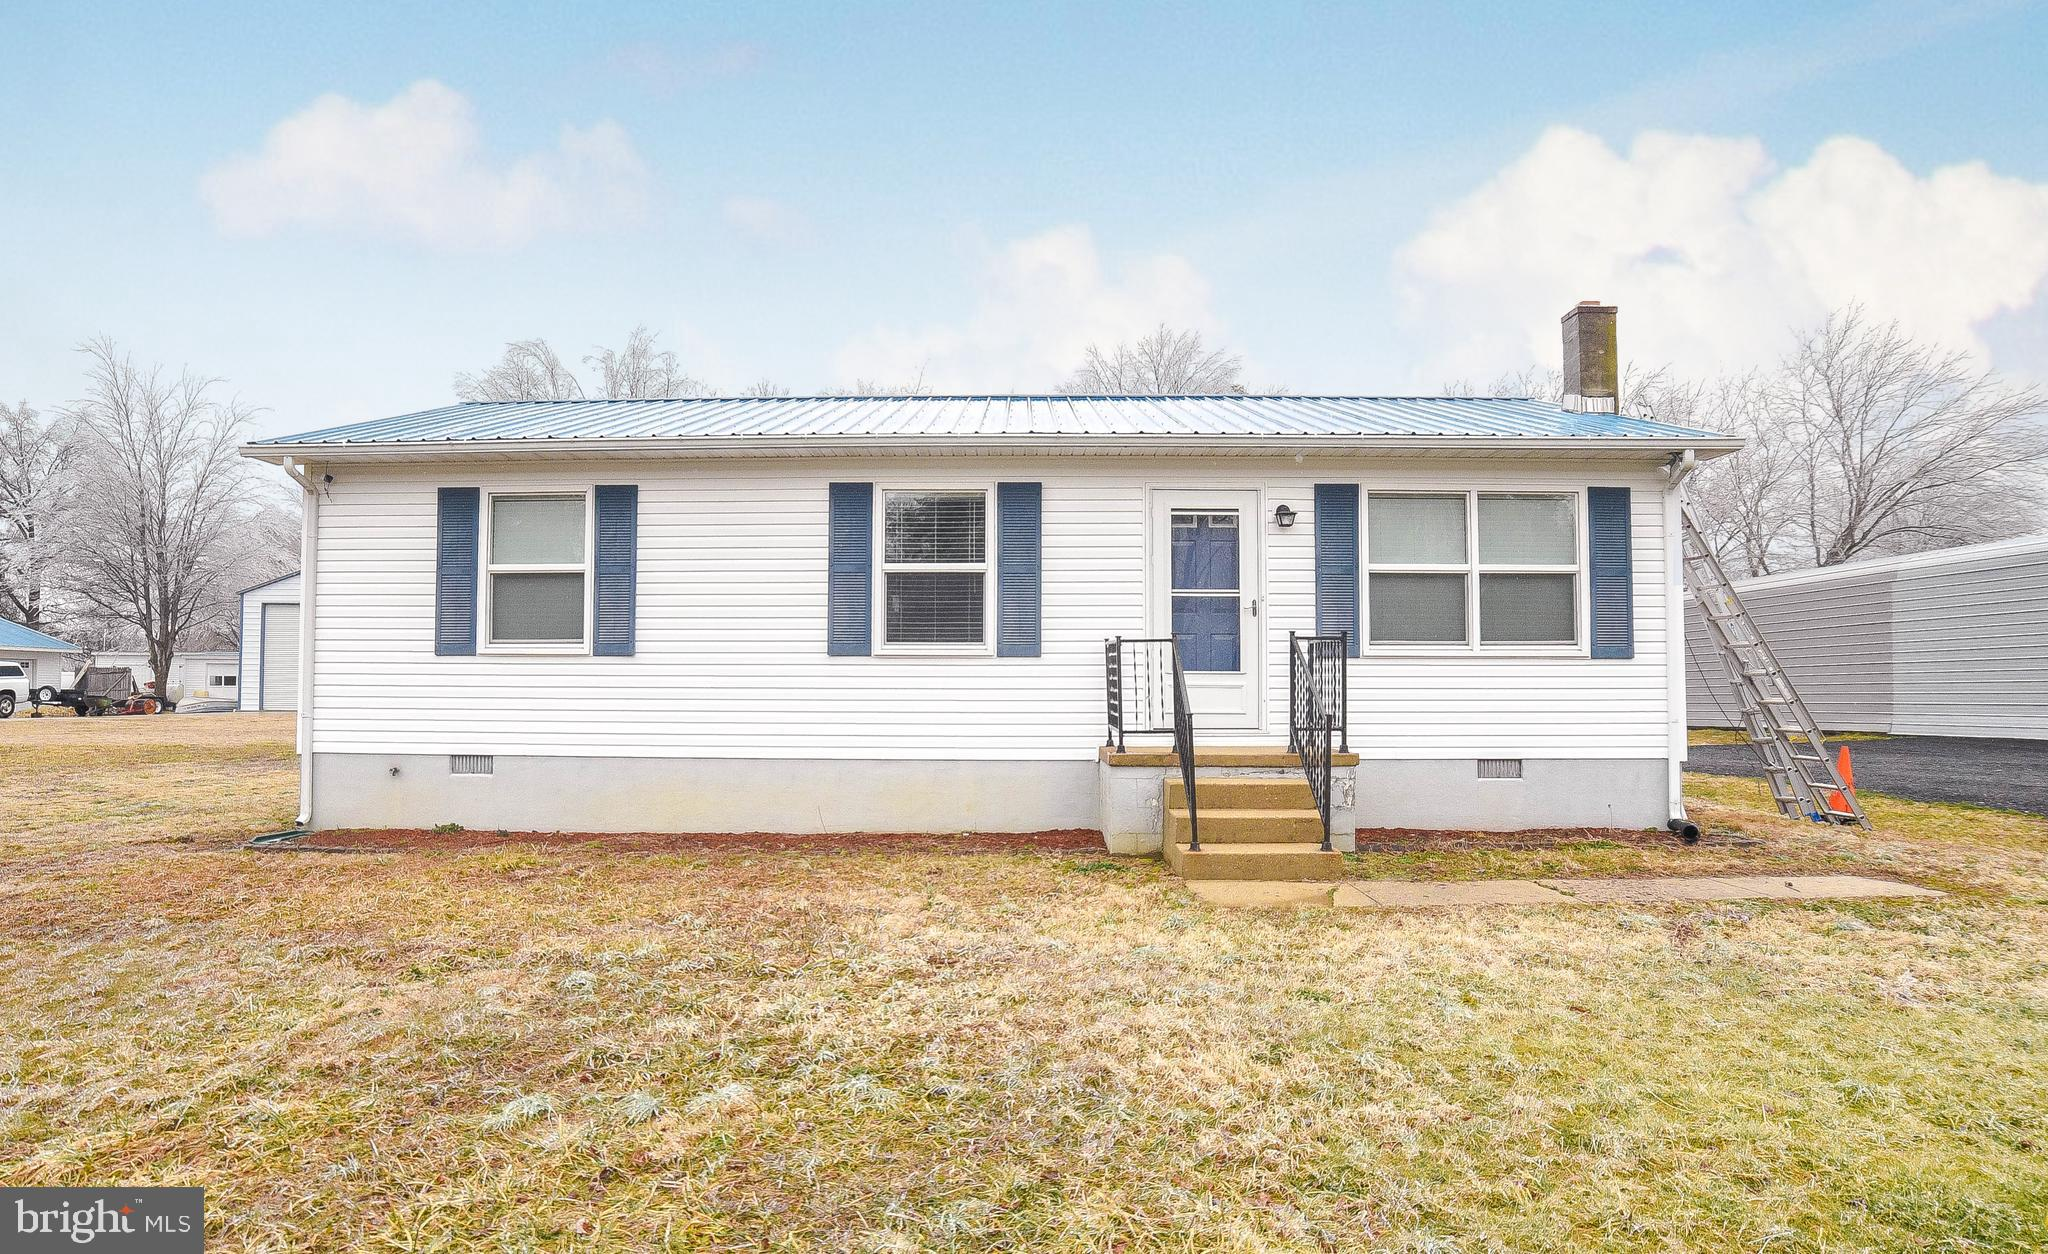 This adorable rambler shows well. Owner has well maintained this home. 3 bedrooms, 1 full bath. upda